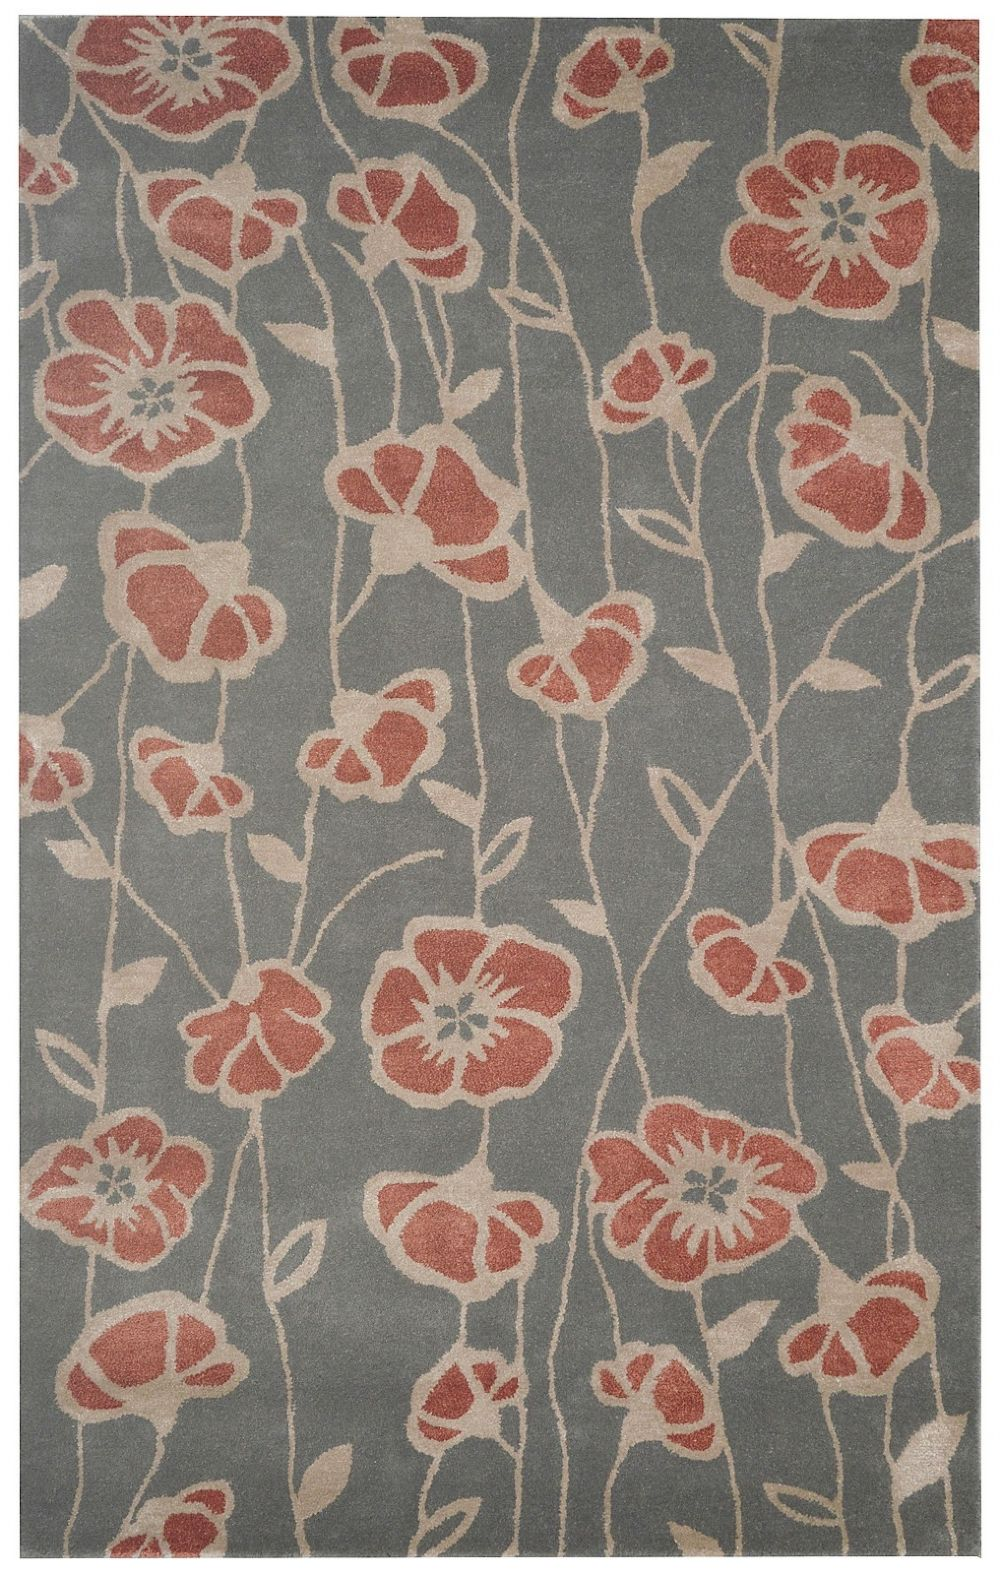 rizzy rugs gillespie avenue transitional area rug collection